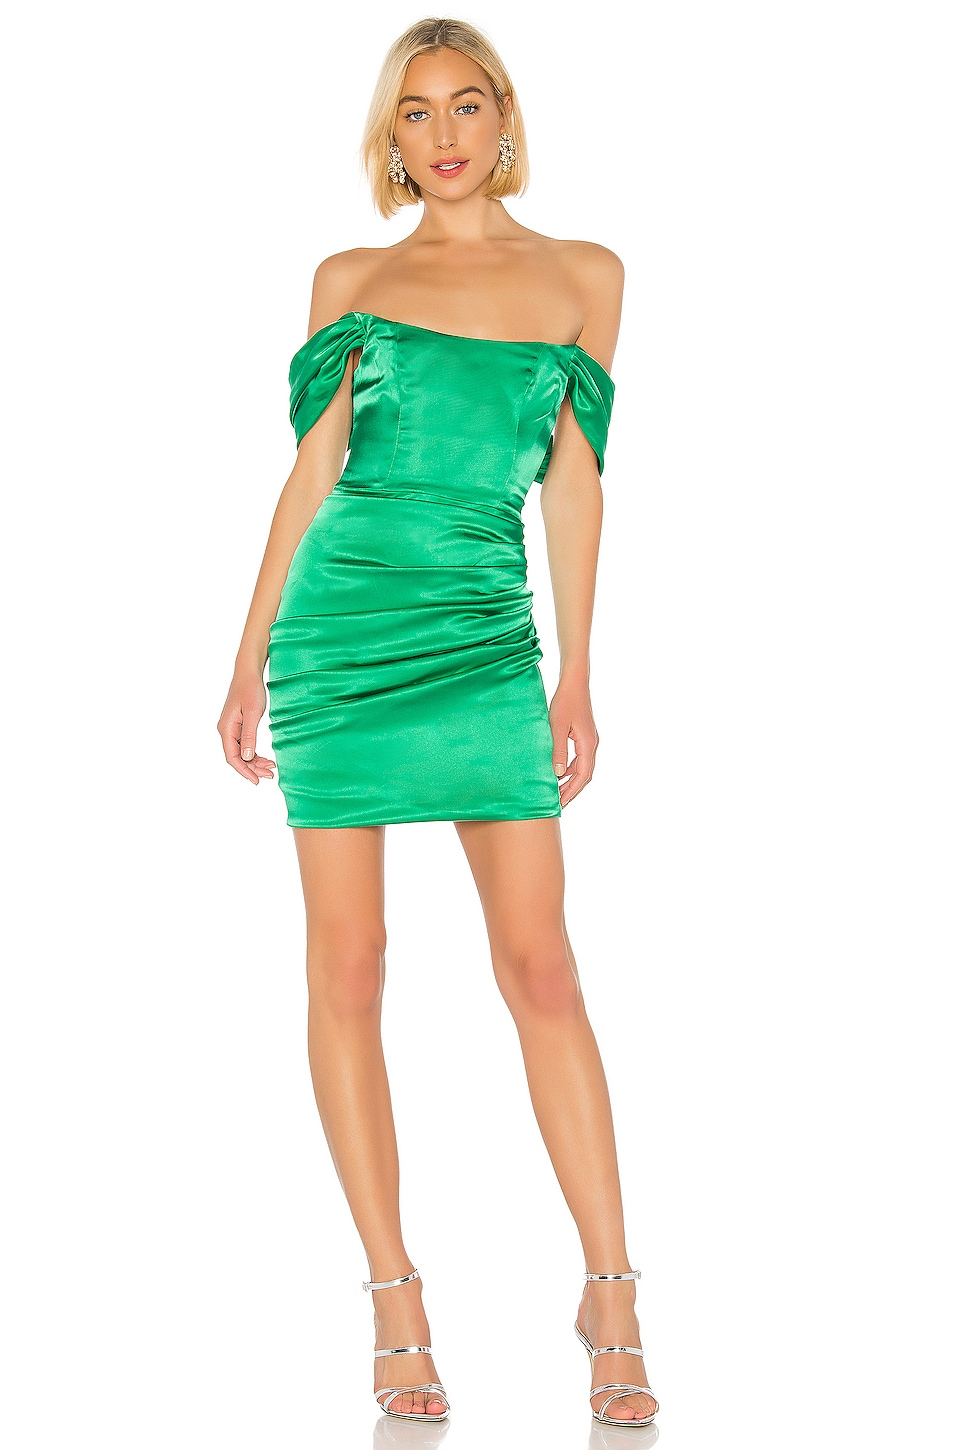 DE LA VALI Guadalupe Dress in Emerald Green